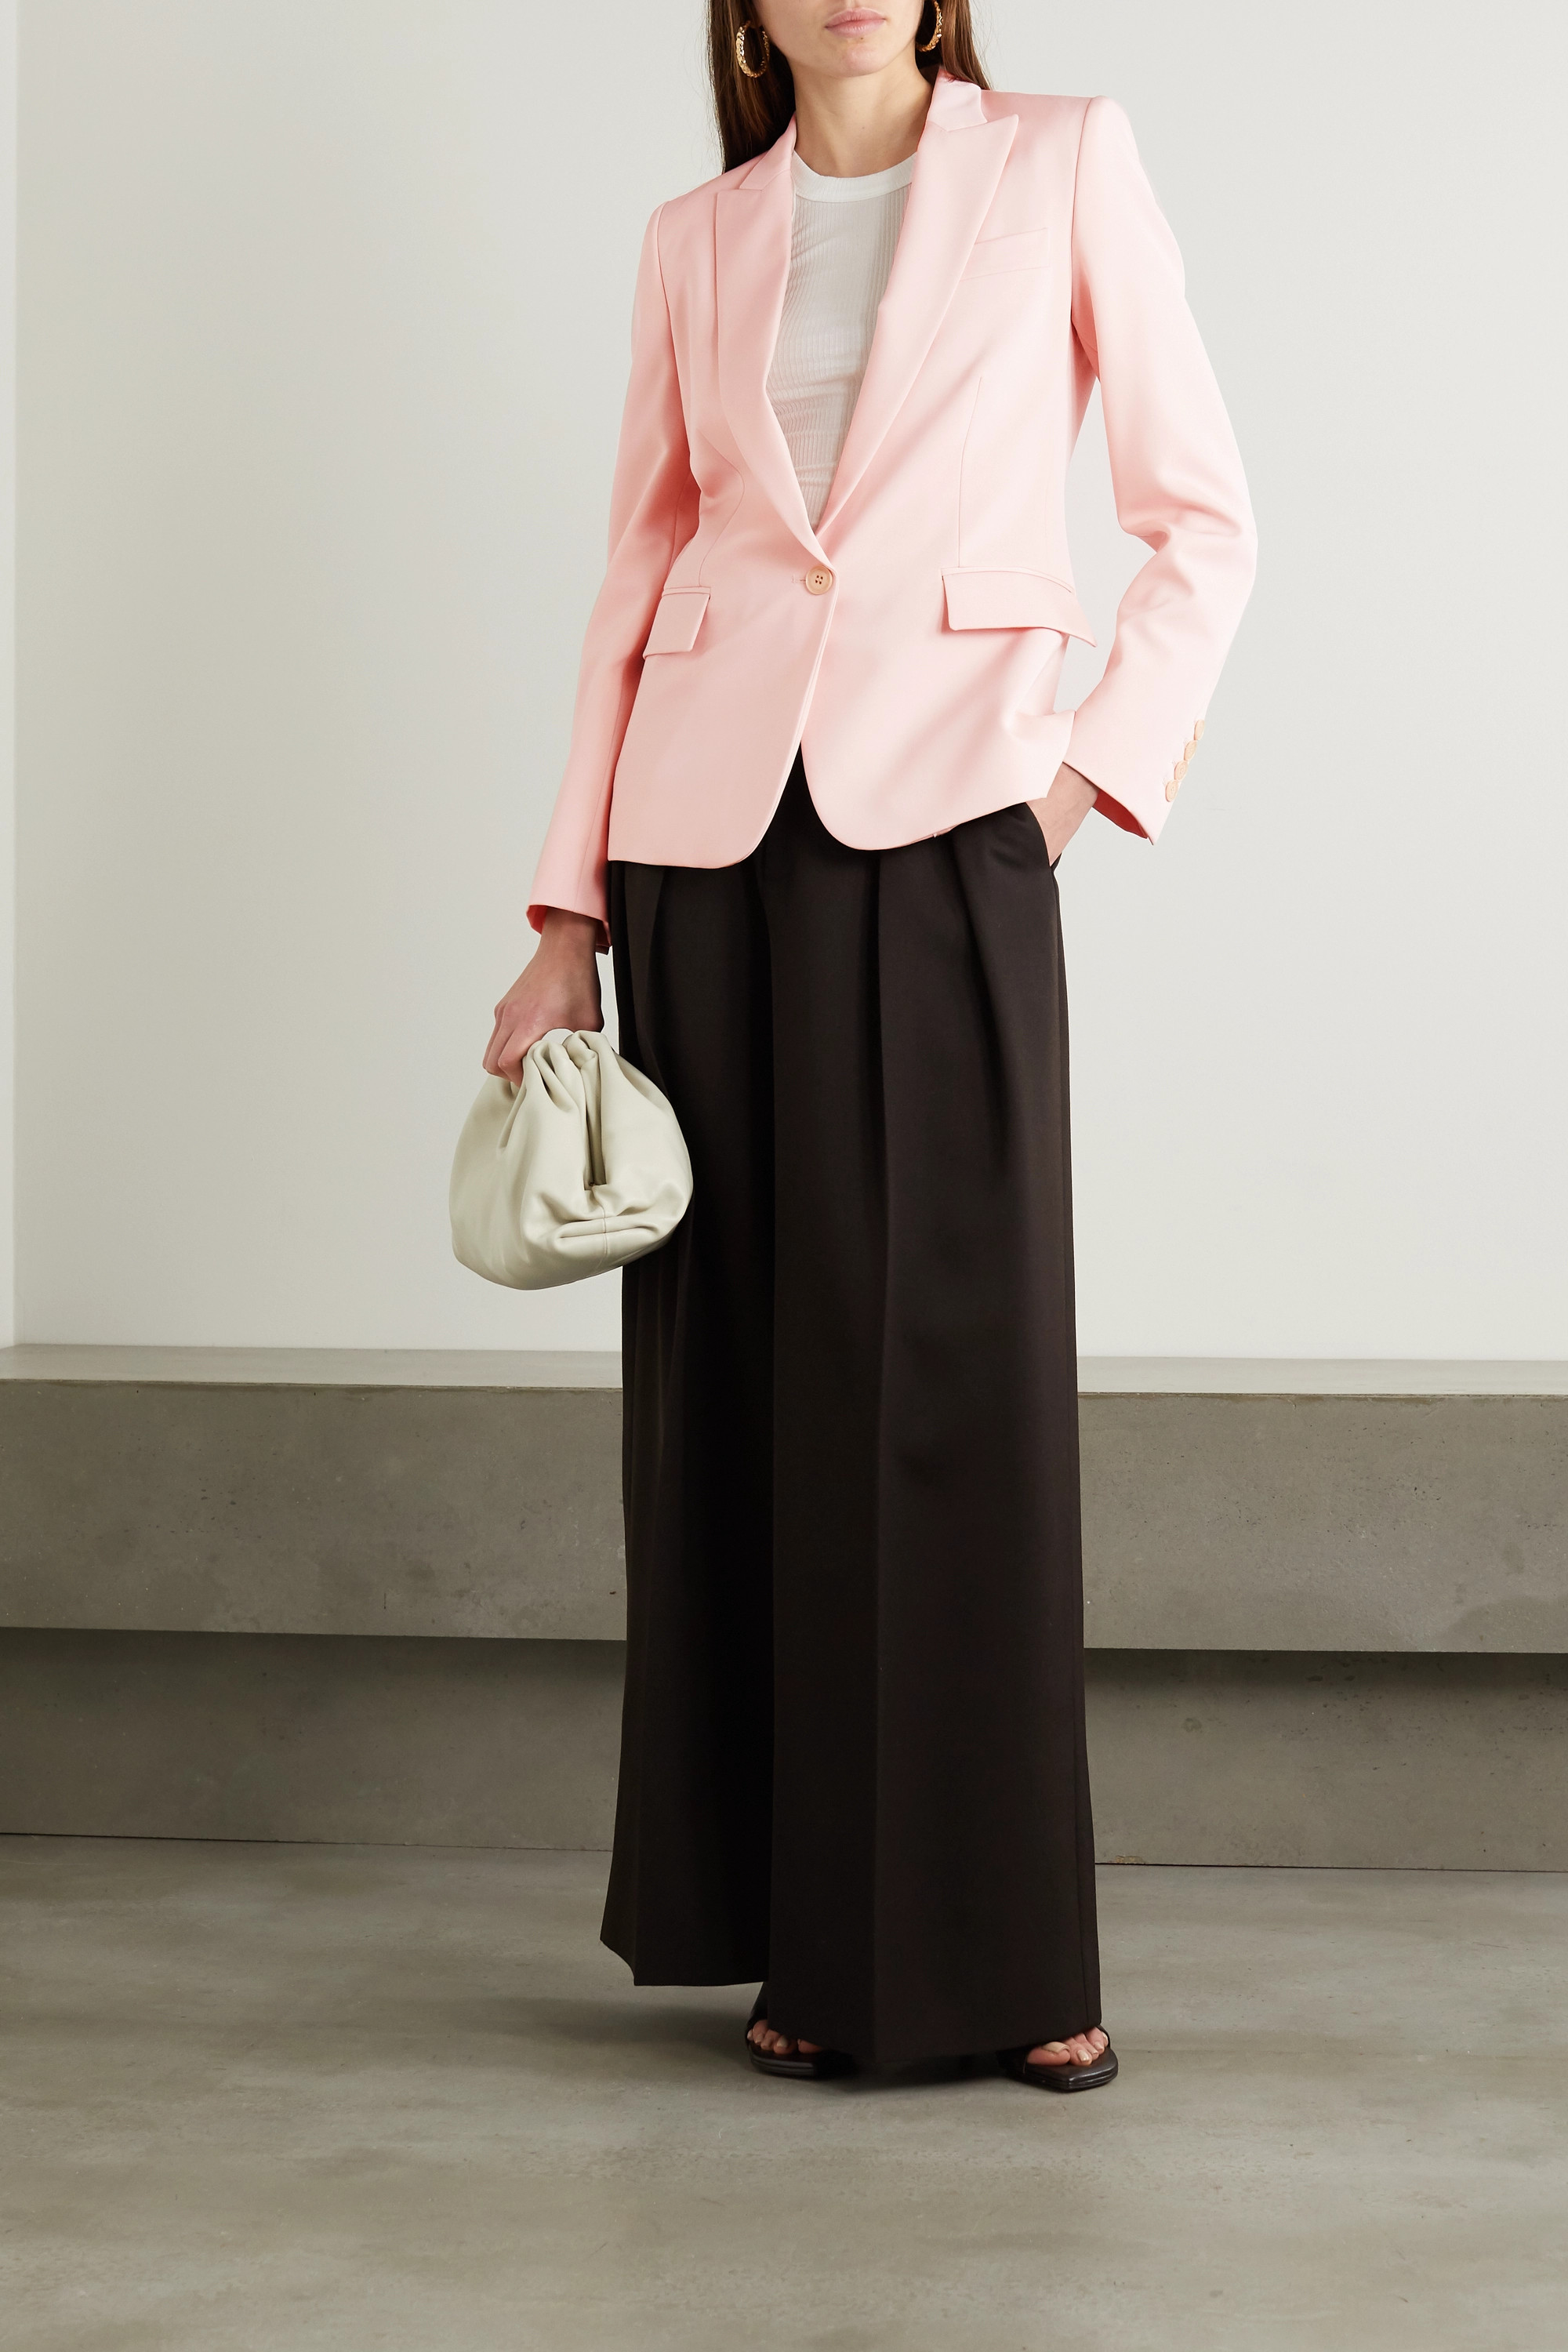 STELLA MCCARTNEY + NET SUSTAIN Ingrid wool-twill blazer